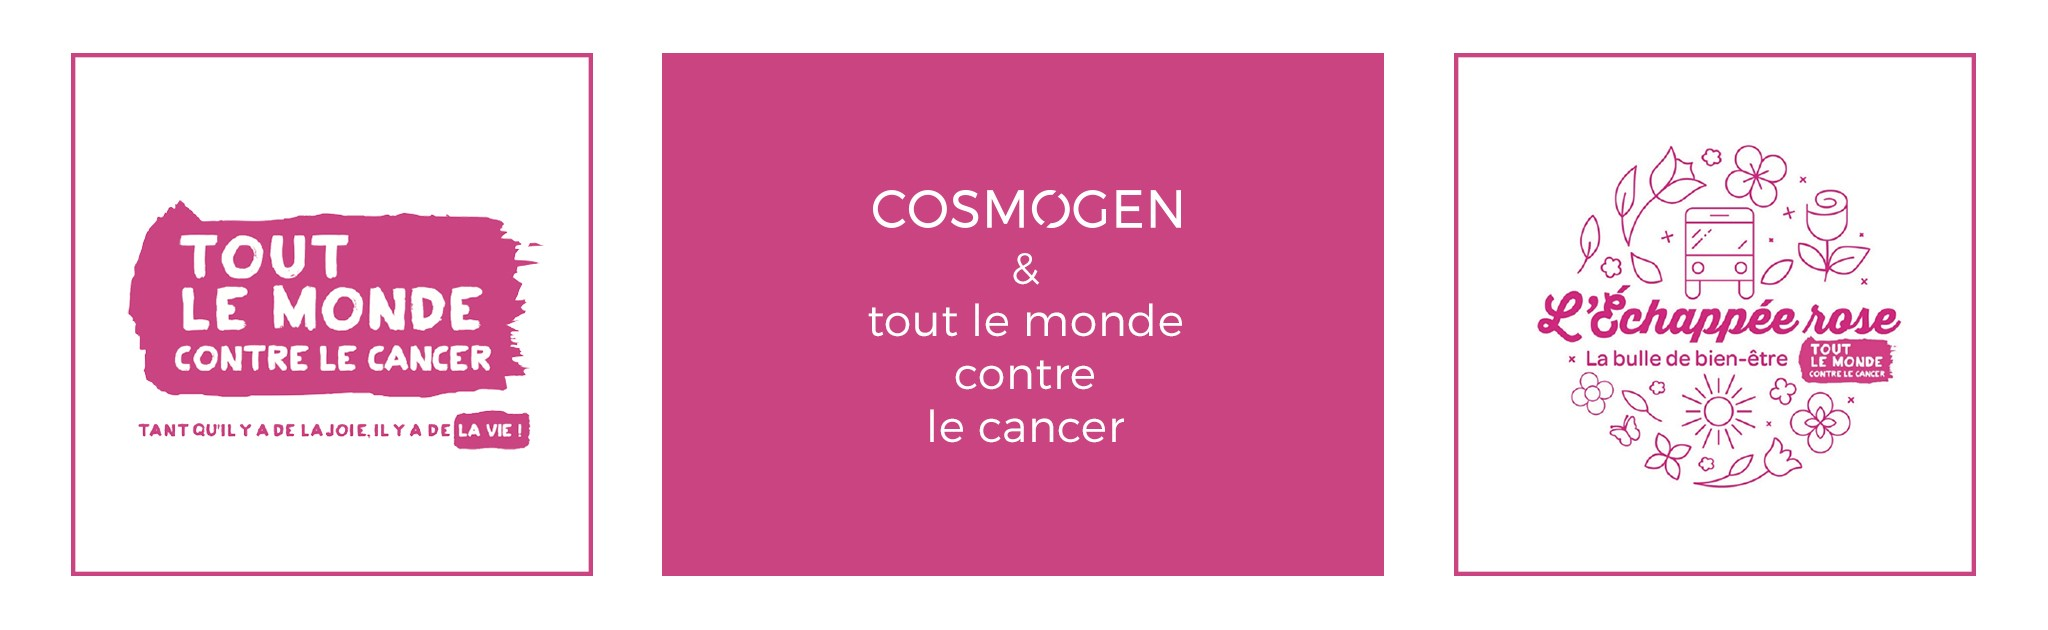 http://toutlemondecontrelecancer.com/wp-content/uploads/2019/08/25062019-DP-ER-2019.pdf